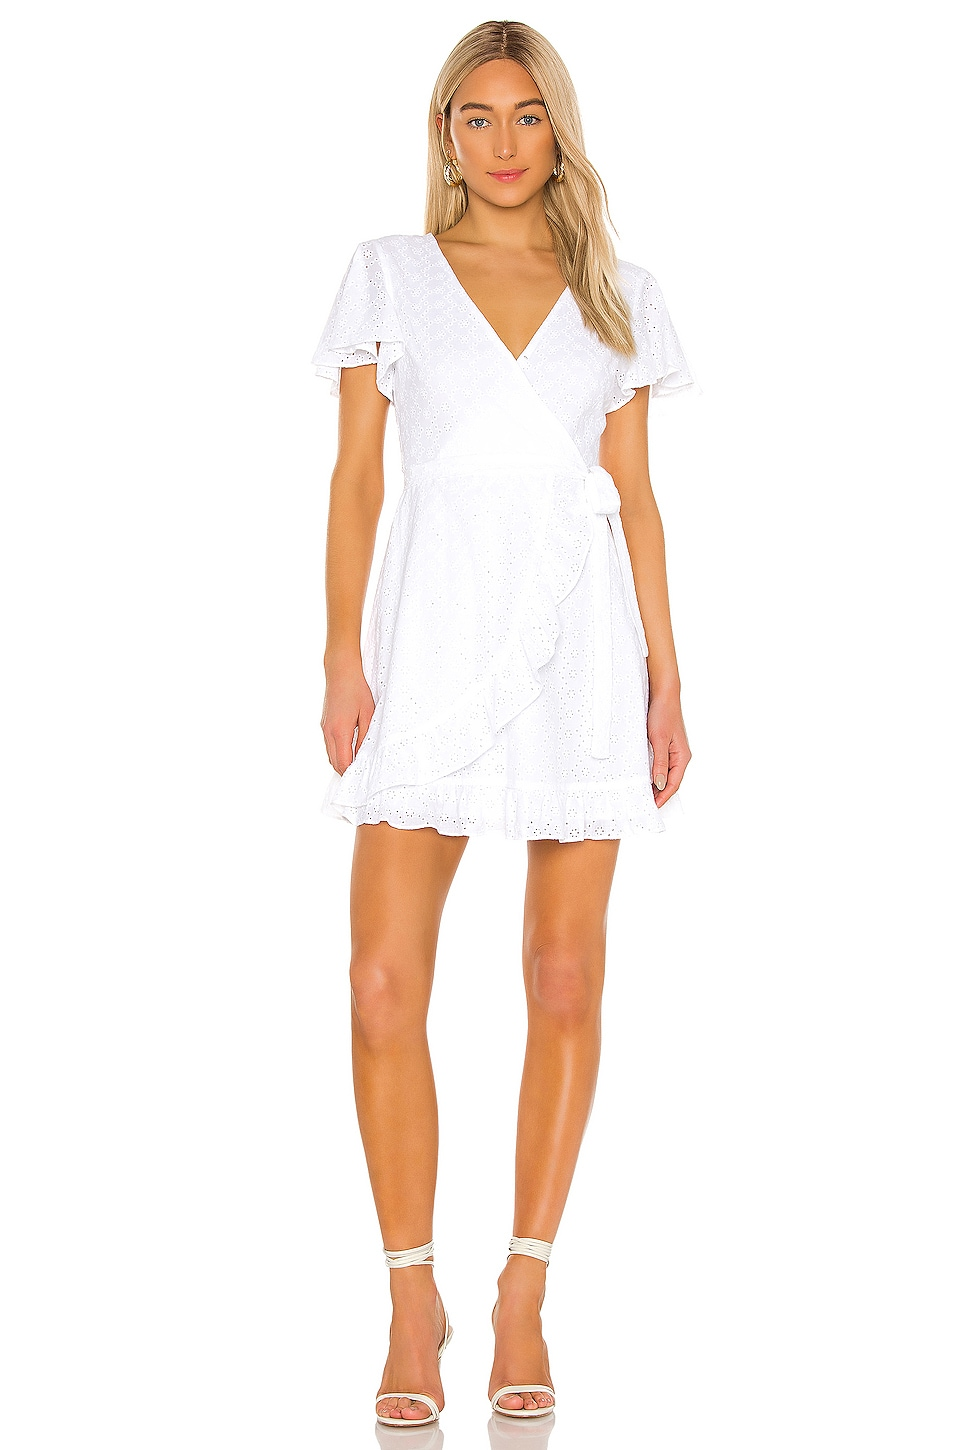 JACK by BB Dakota Easy On The Eyelet Wrap Dress             BB Dakota                                                                                                       CA$ 122.67 17